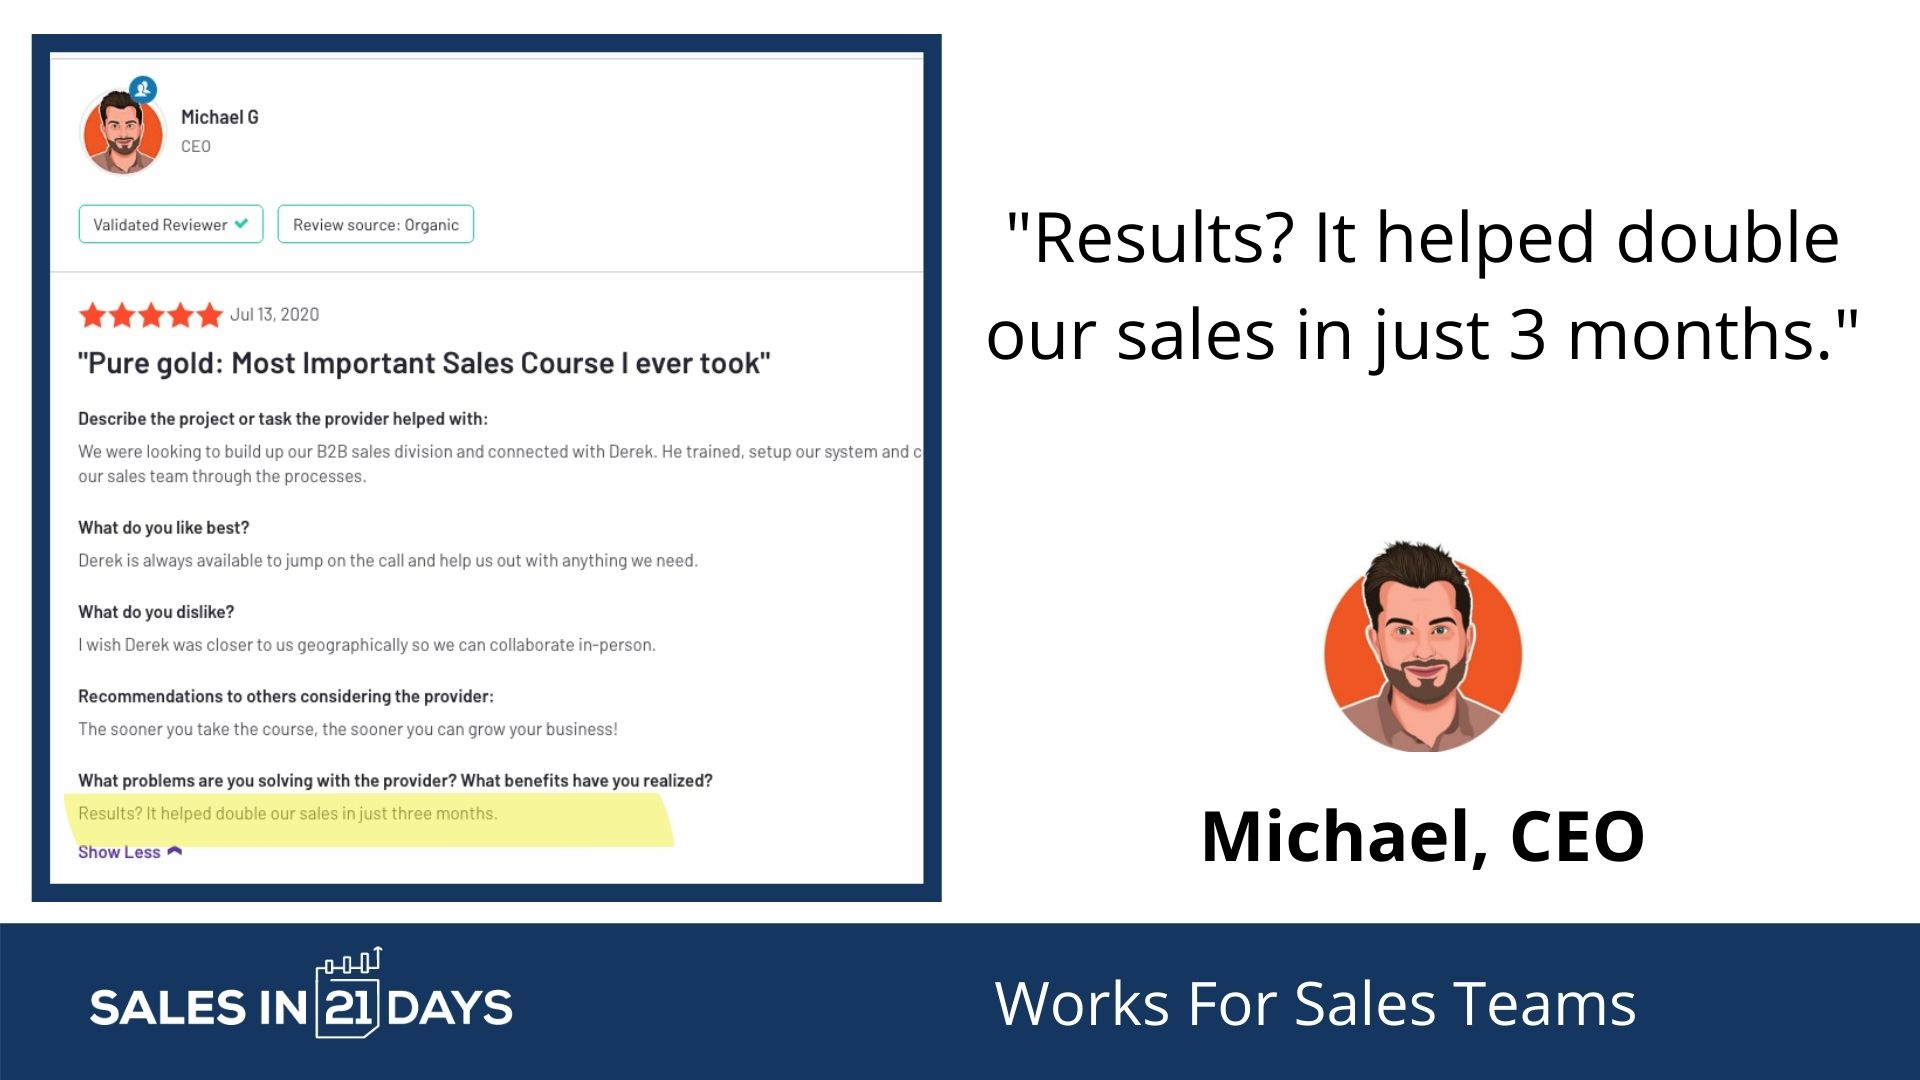 Sales-In-21-Days-Reviews-Moderrn-Sales-Training-5